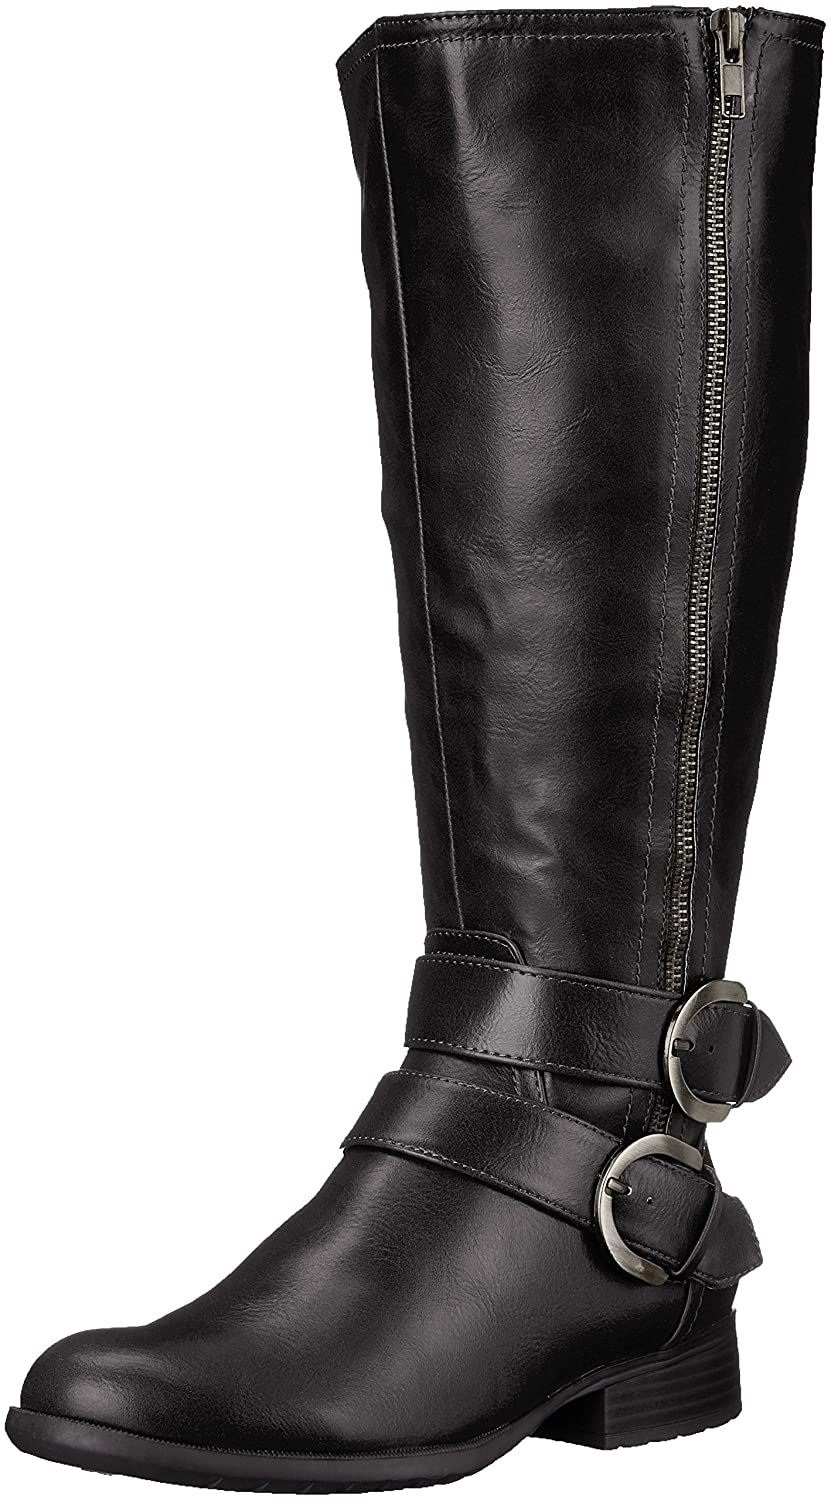 LifeStride Women's X-Must Riding Boot B01HD3N7QU 7 B(M) US|Black Tumbled